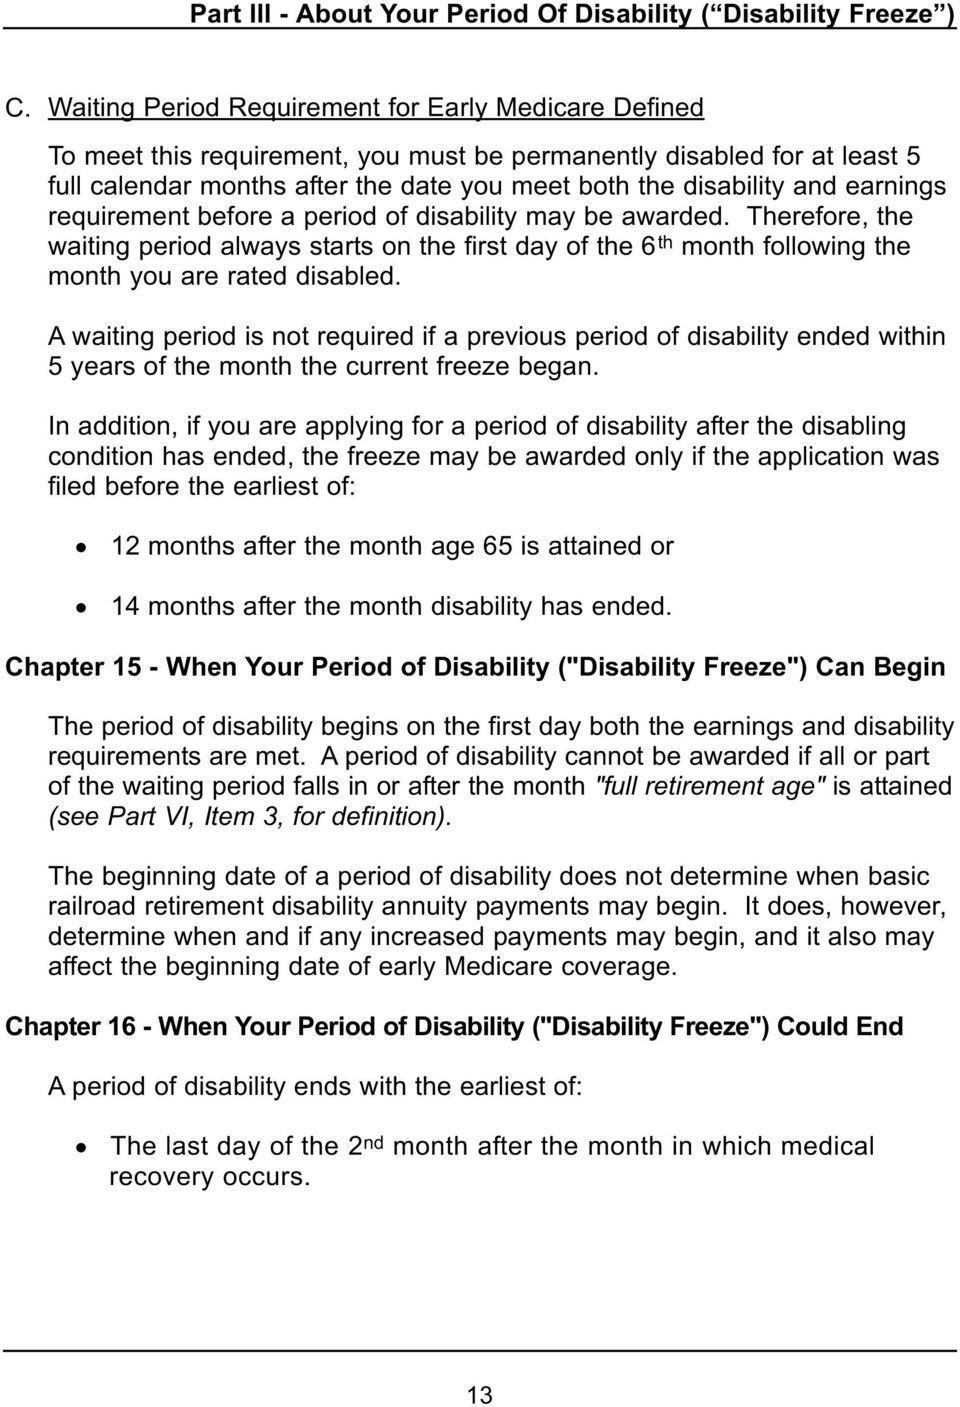 earnings requirement before a period of disability may be awarded. Therefore, the waiting period always starts on the first day of the 6 th month following the month you are rated disabled.